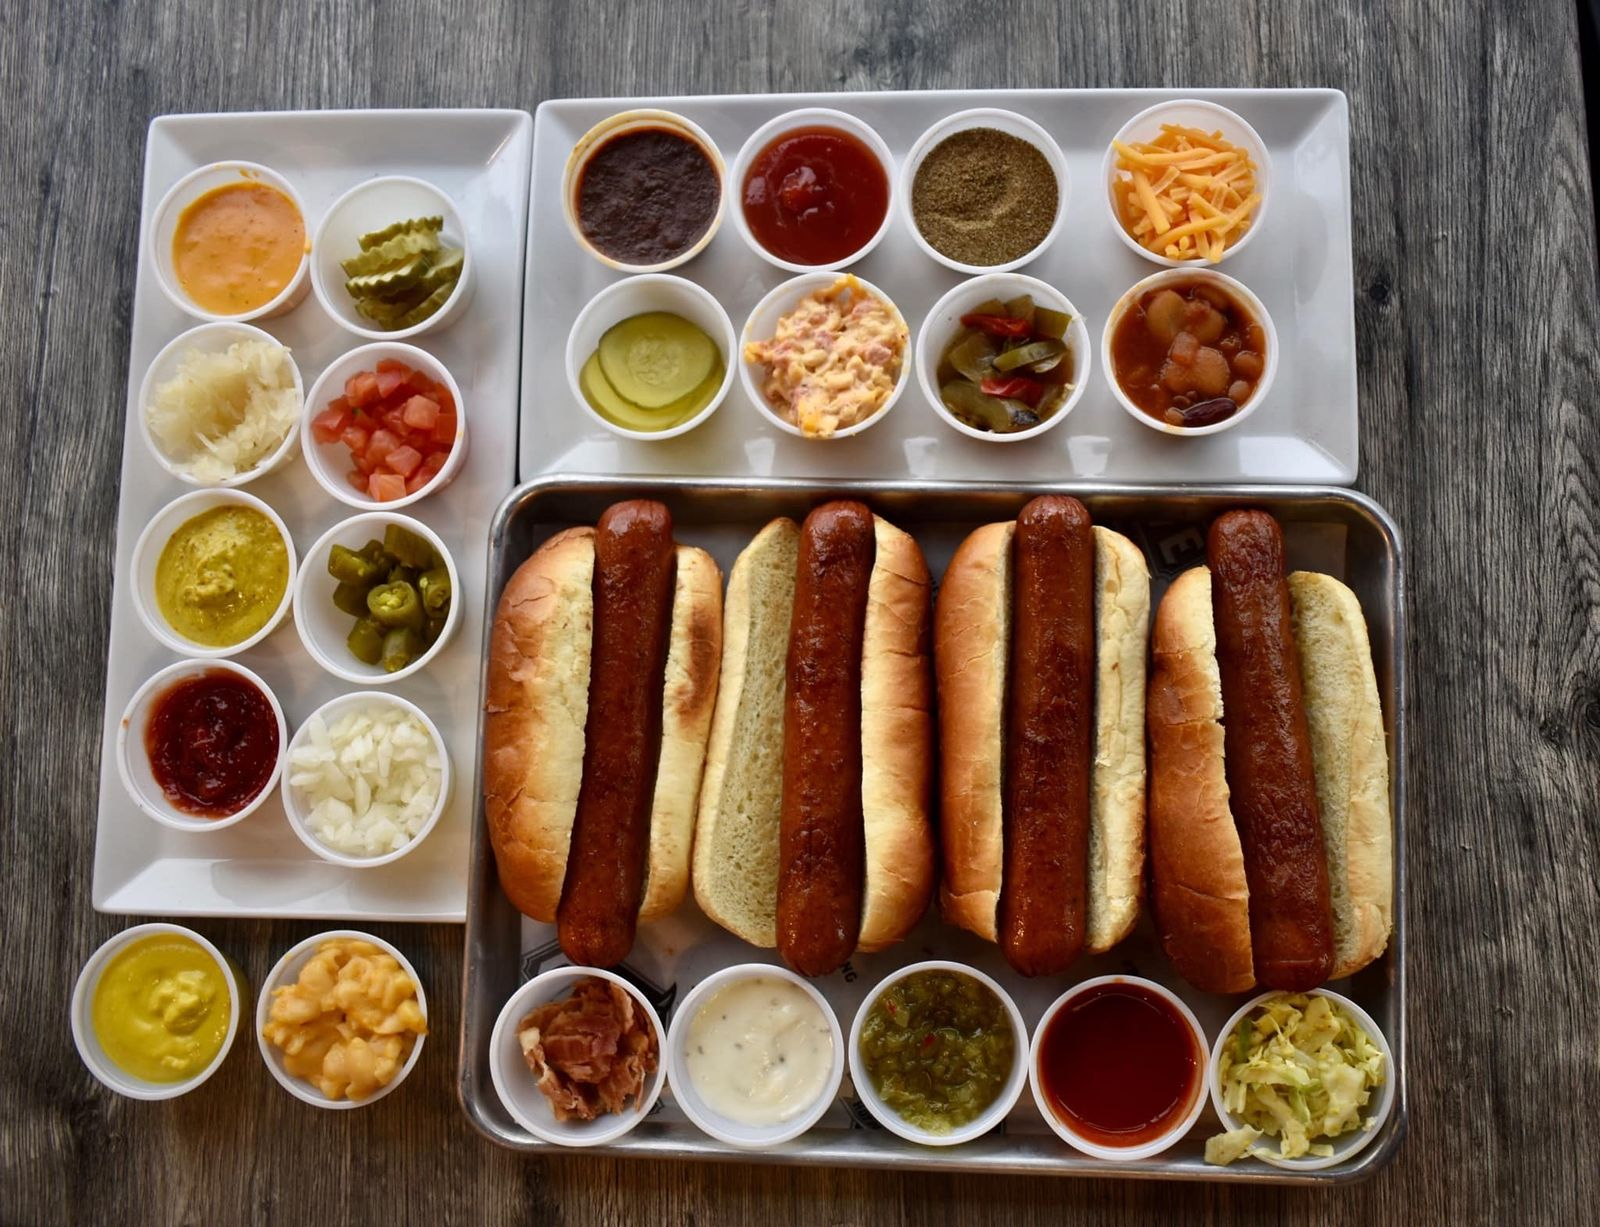 Crave Hot Dogs and BBQ Celebrates Craves' National Hot Dog Day Friday July 17th, With Free Hot Dogs!